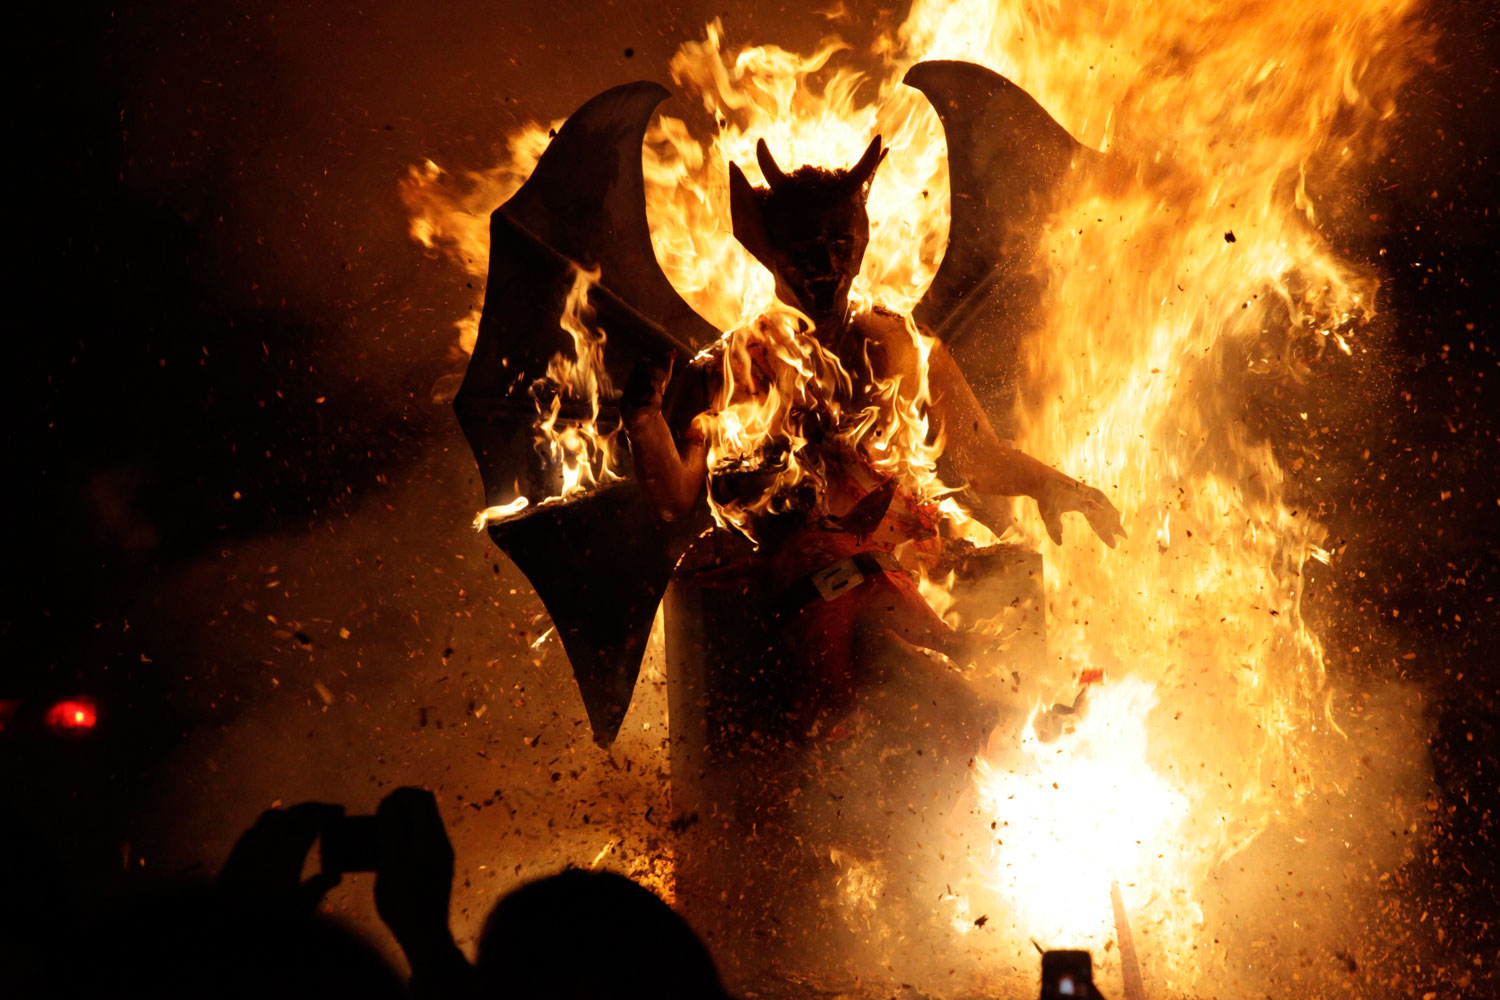 December 7, 2011. A five-metre (16 feet) replica of a devil burns during a  Quema del Diablo  (burning of the devil) ceremony in Antigua, 217 km (135 miles) off Guatemala City. Locals believe that the devil symbolizes evil and negativity, and burning its replica would alleviate them of these problems. However, environmental groups have condemned the ceremony, saying it is a source of air pollution, while religious groups have considered this a form of devil worship.